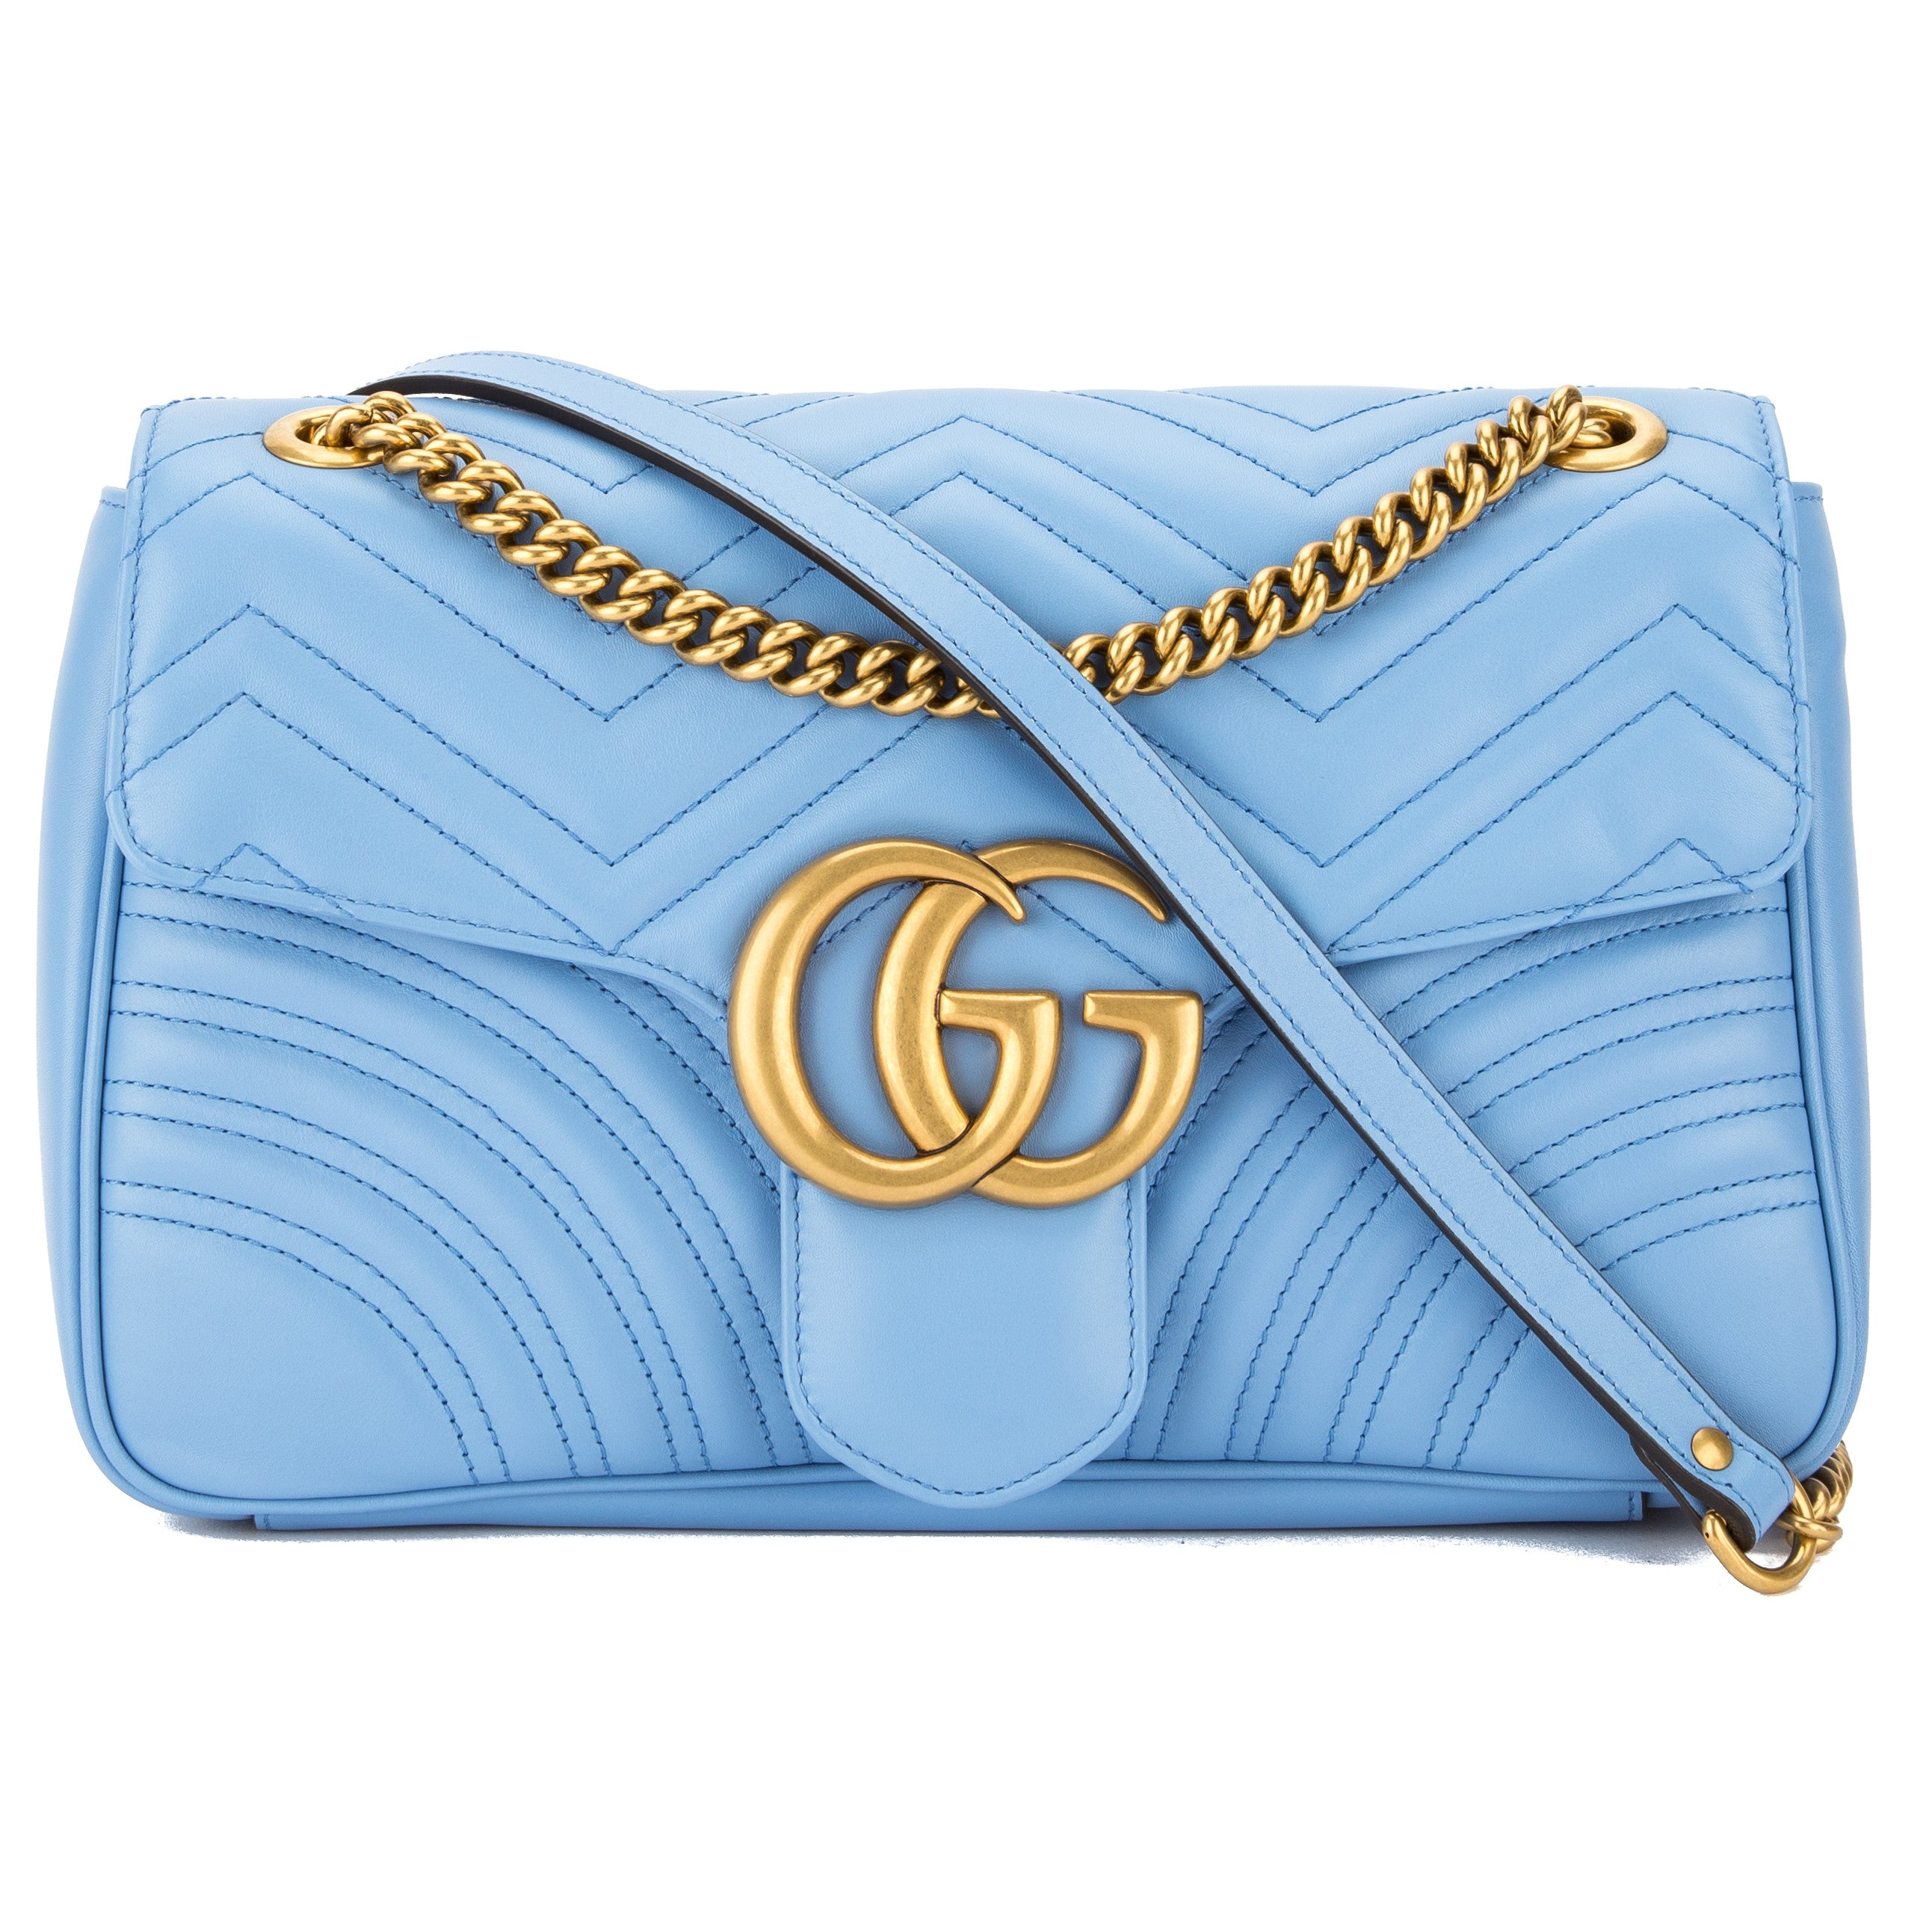 bcd308bd8e85 Gucci Light Blue Leather GG Marmont Matelasse Shoulder Bag New with Tags